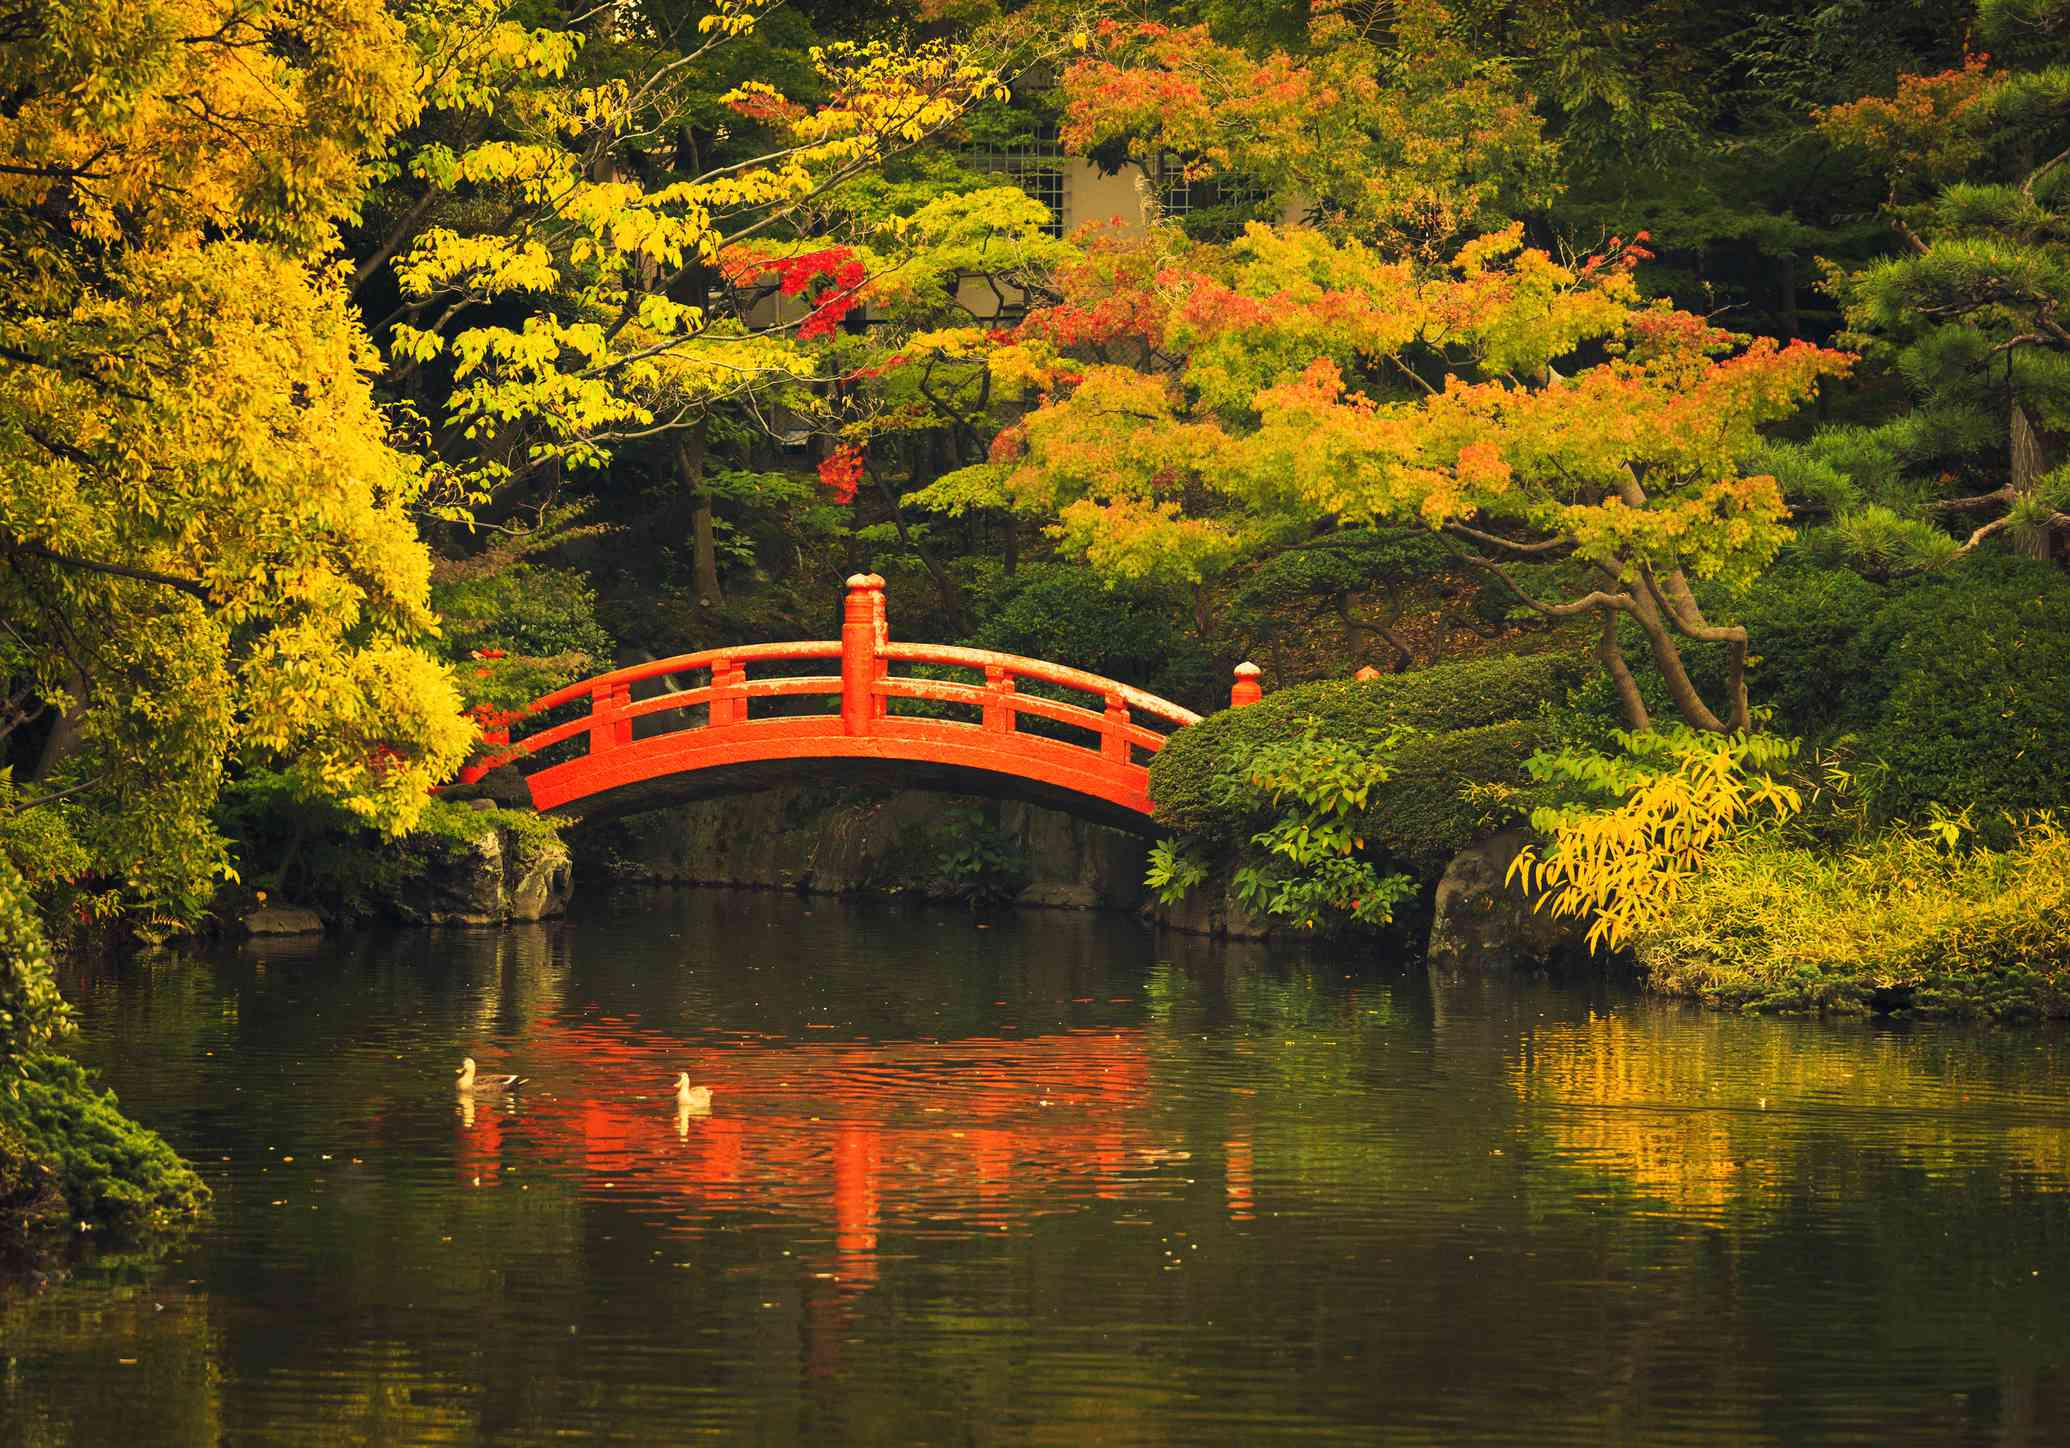 red Japanese footbridge going over a river in a Japanese Garden in autumn